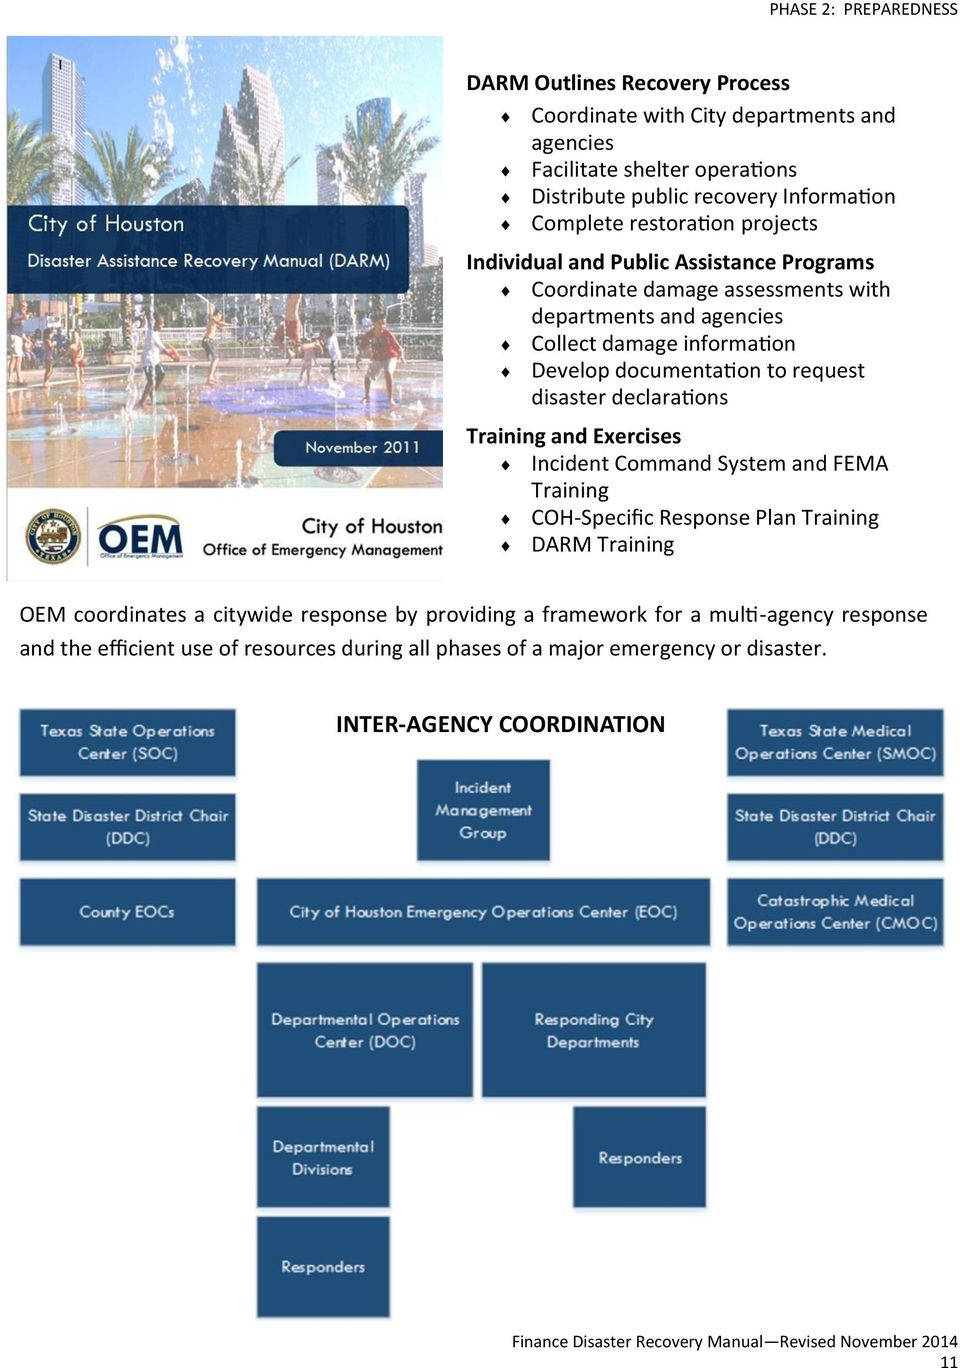 documentation to request disaster declarations Training and Exercises Incident Command System and FEMA Training COH-Specific Response Plan Training DARM Training OEM